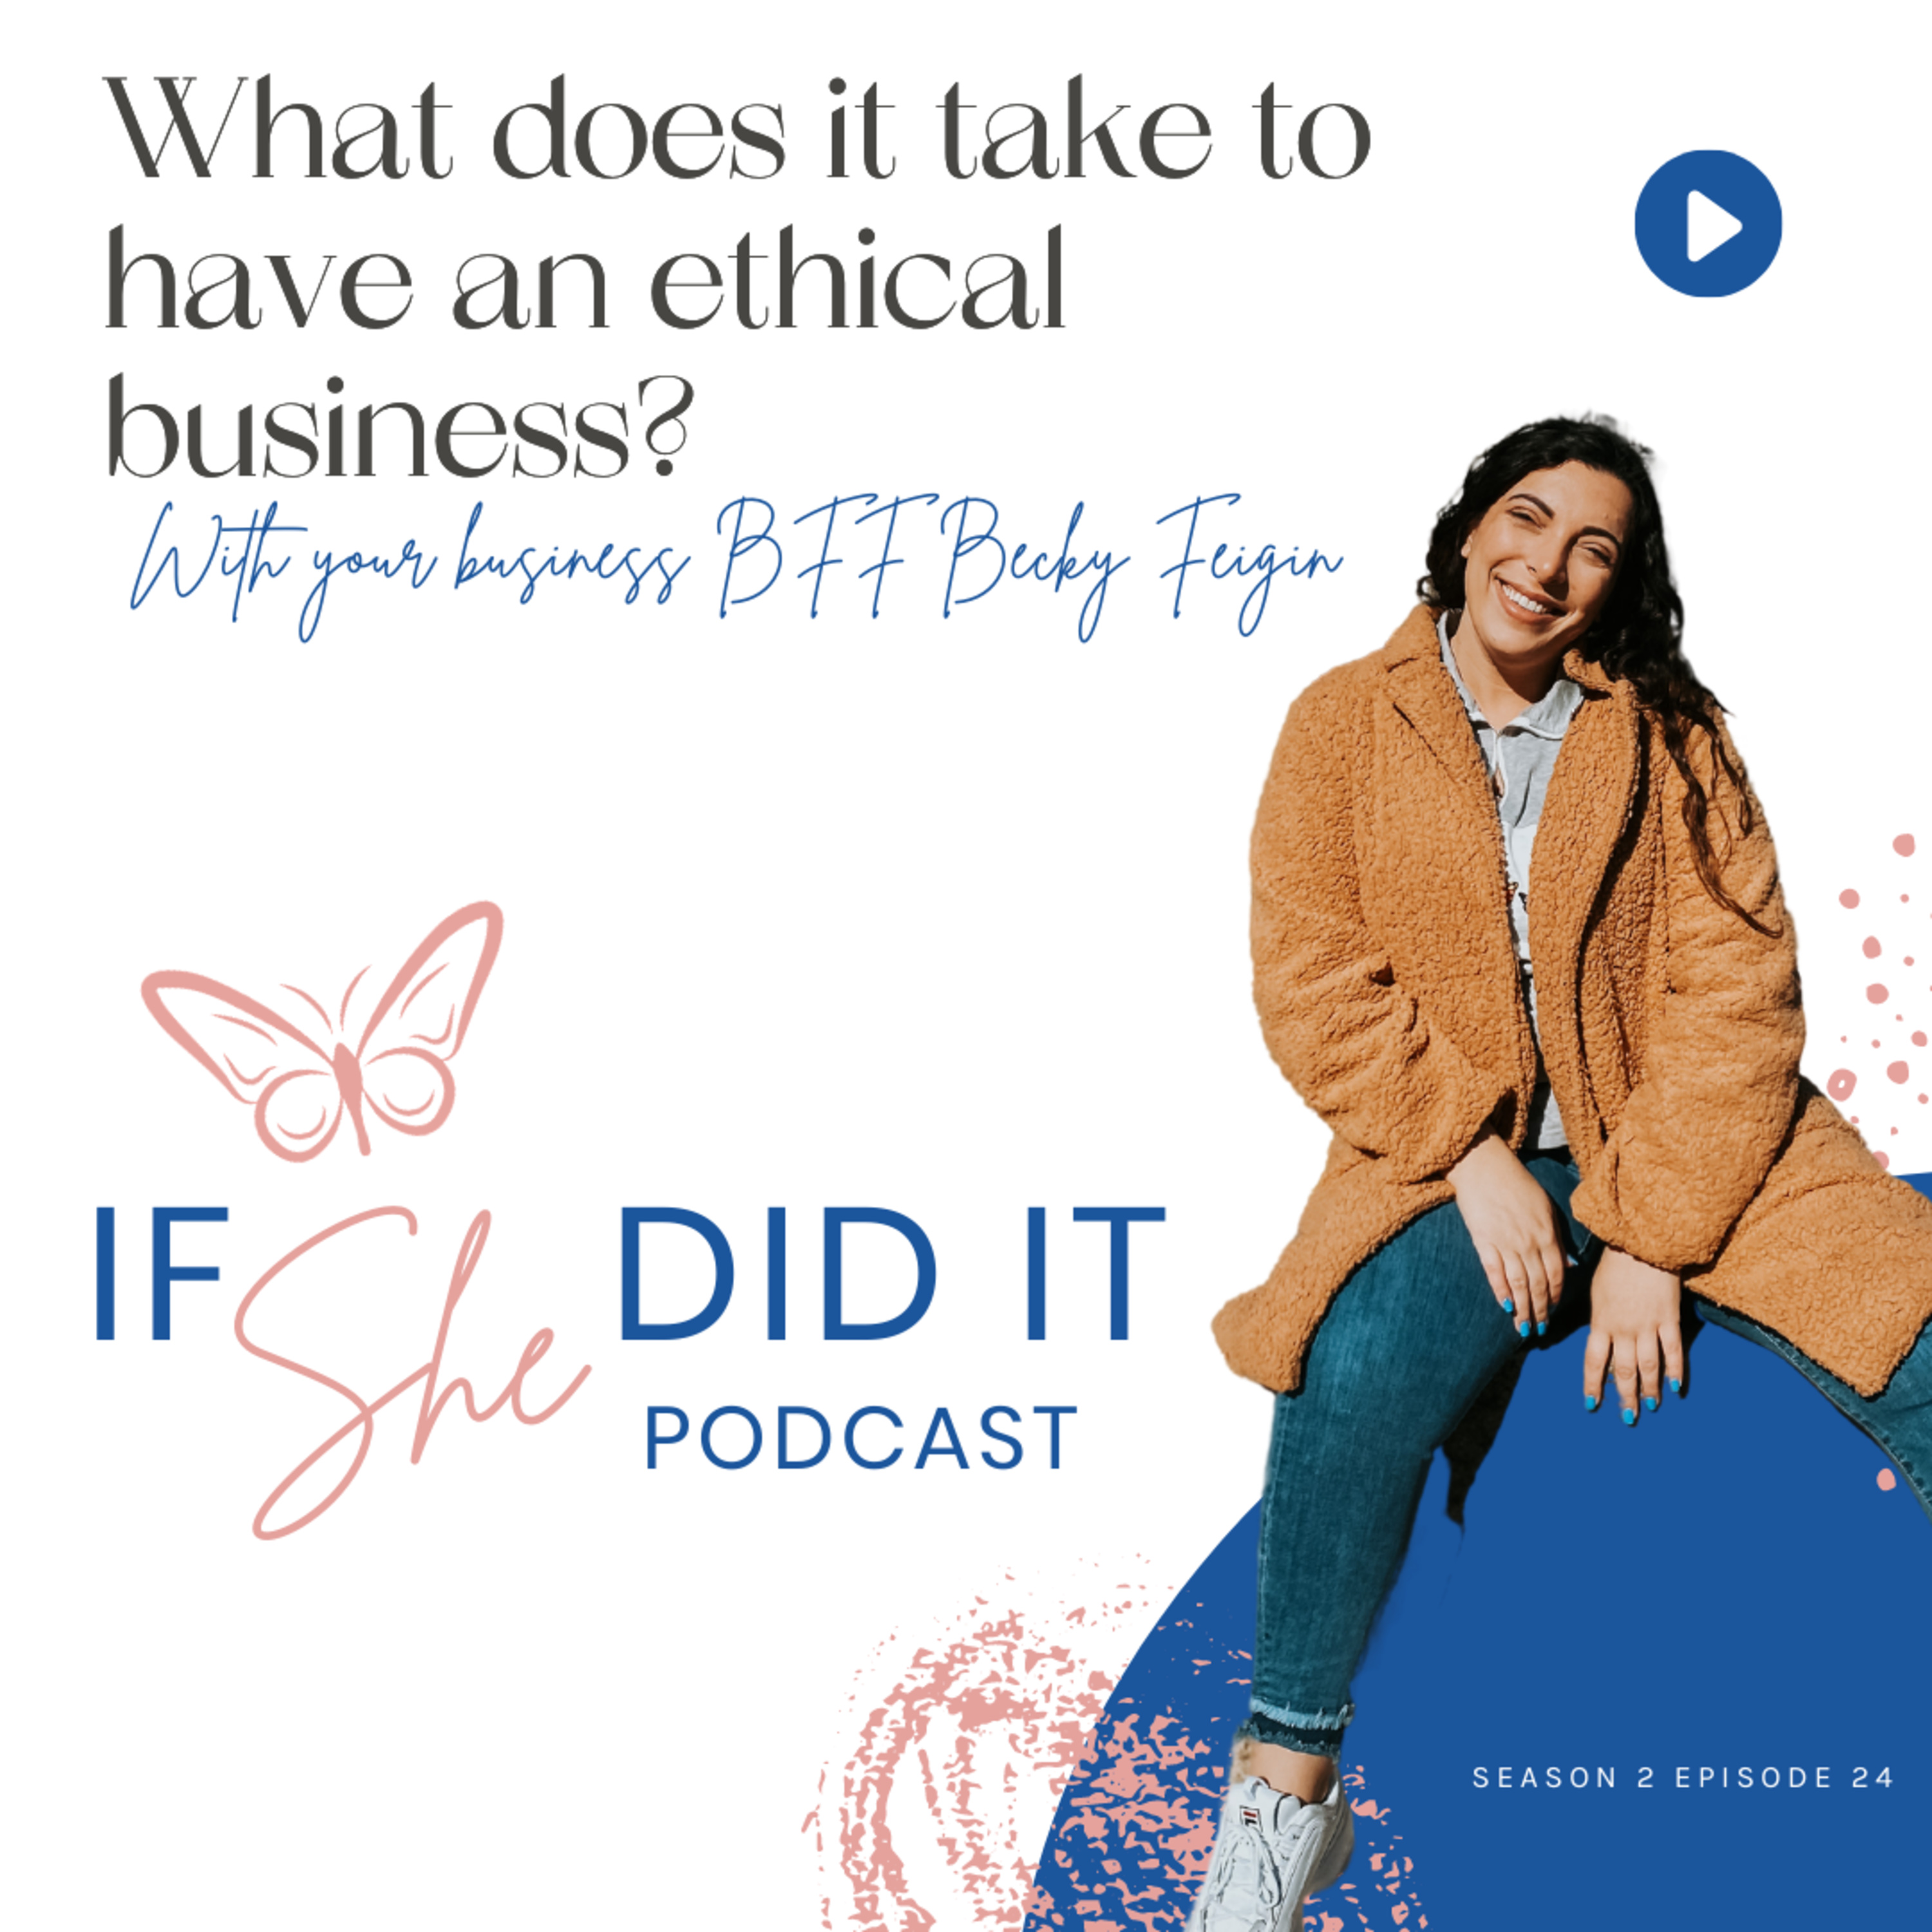 What does it take to have an ethical business?